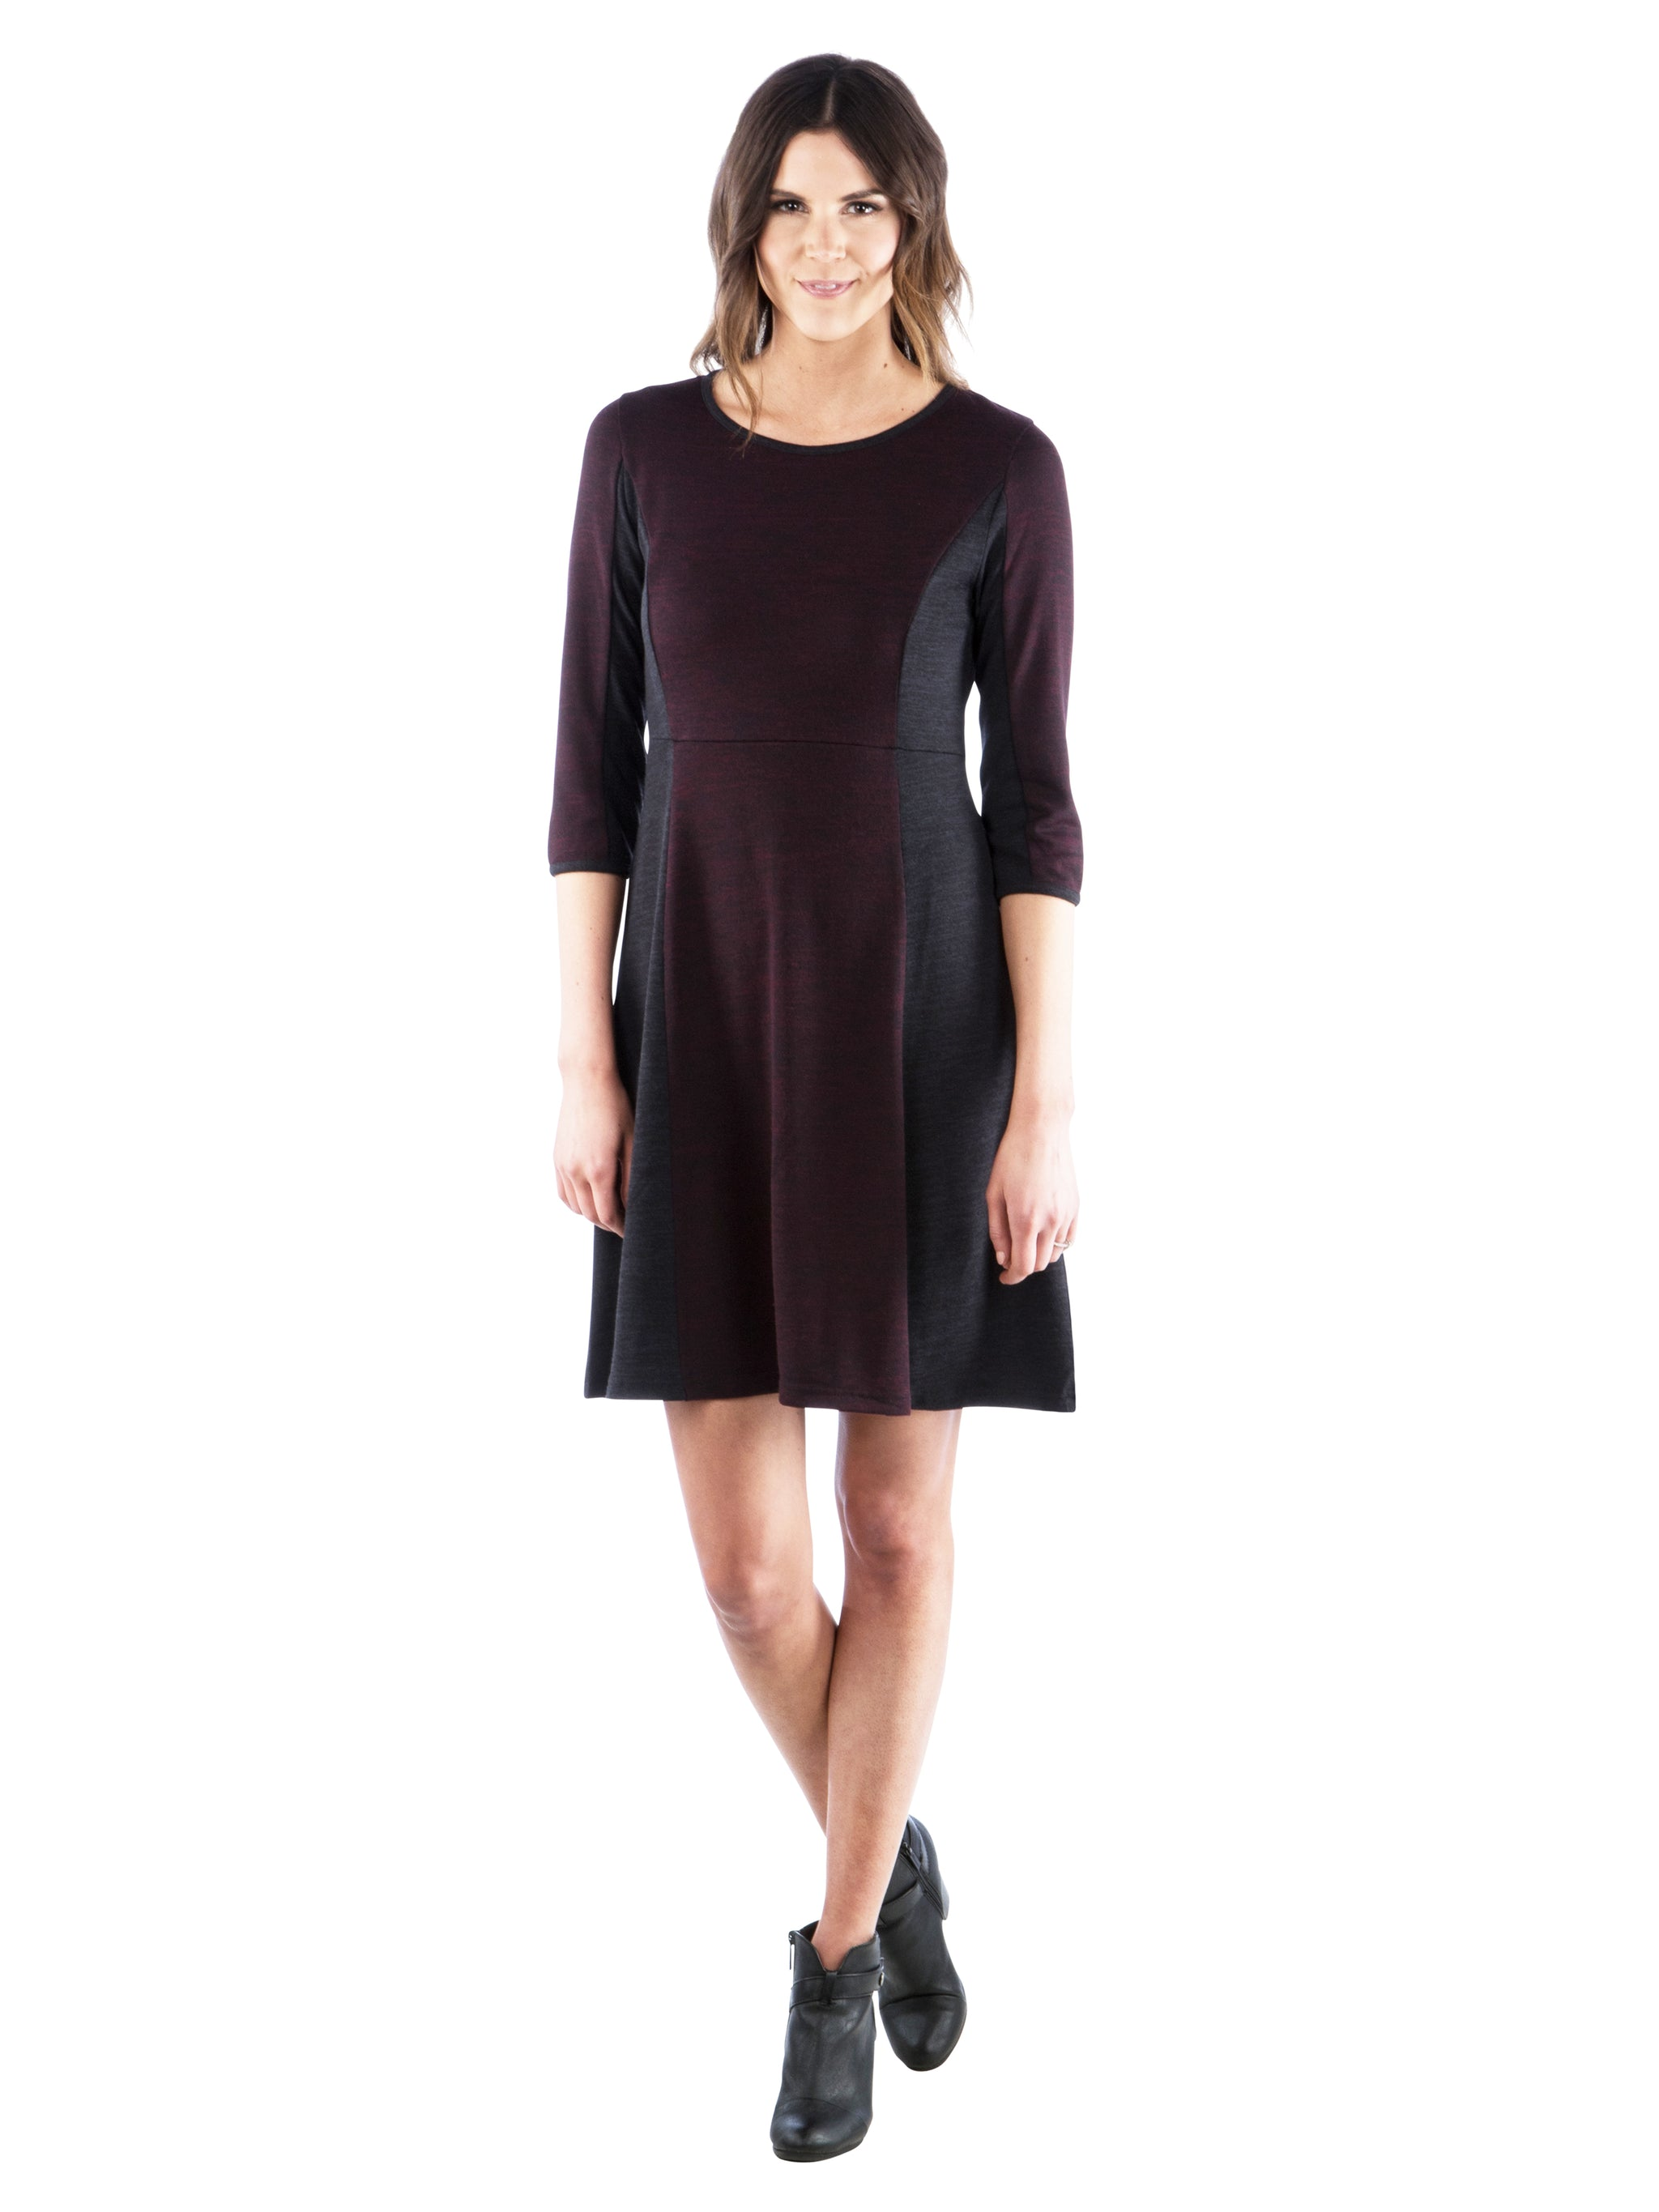 Fit and Flare Color Block Sweater Dress, Black/Maroon, LBD